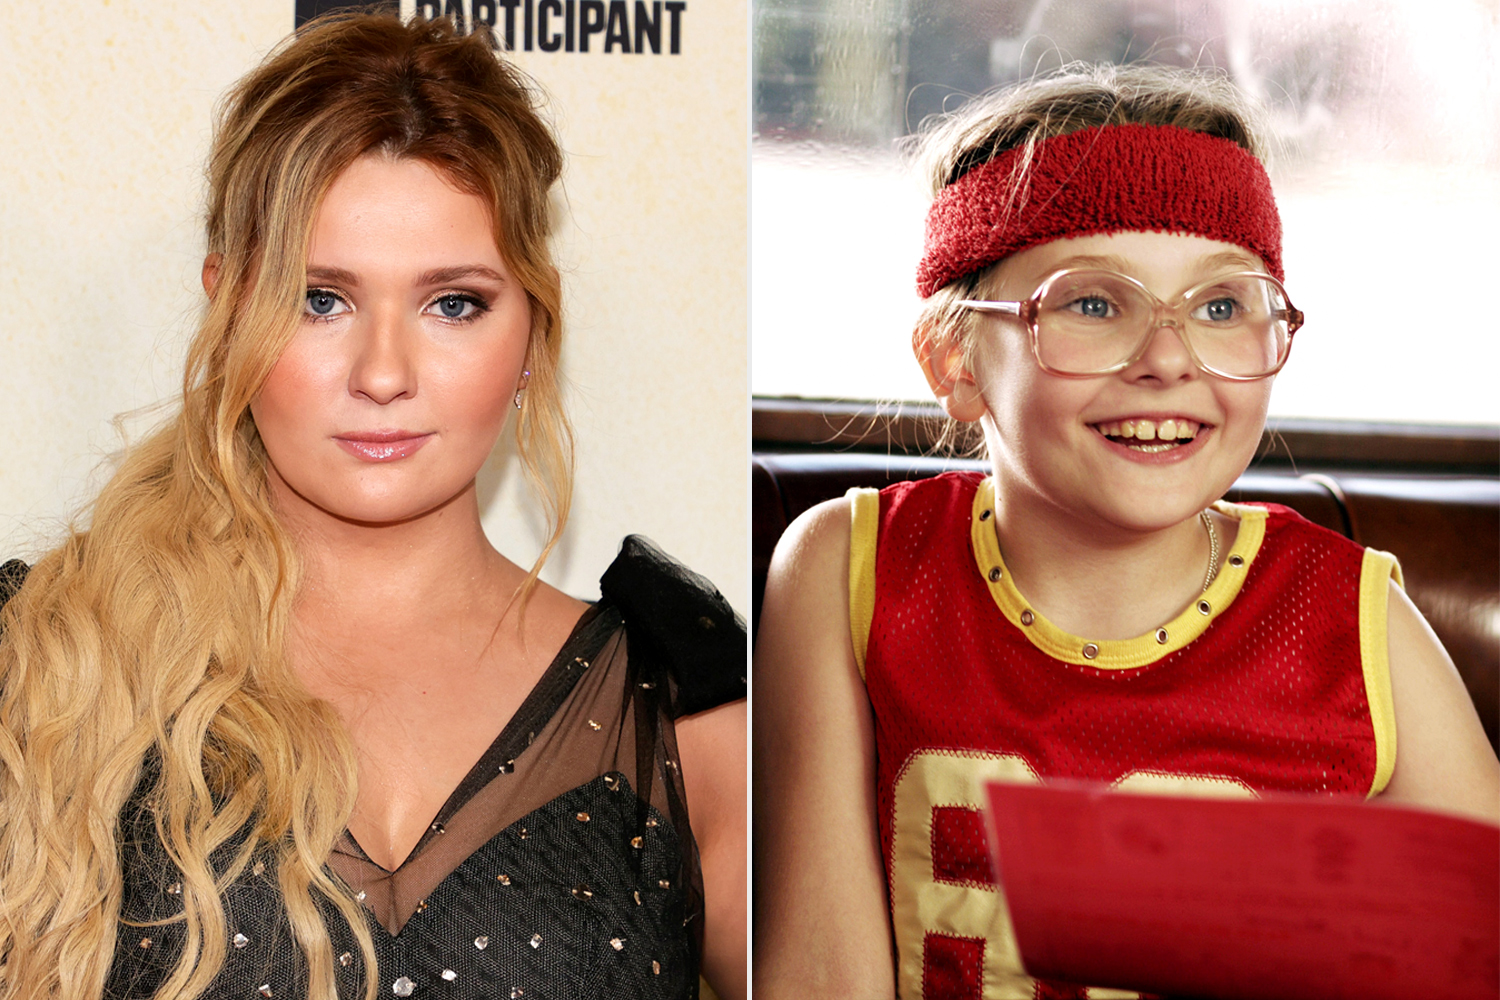 Abigail Breslin Says She Doesn't Want to 'Disrespect' Little Miss Sunshine Childhood Role But Wants to 'Try New Things'